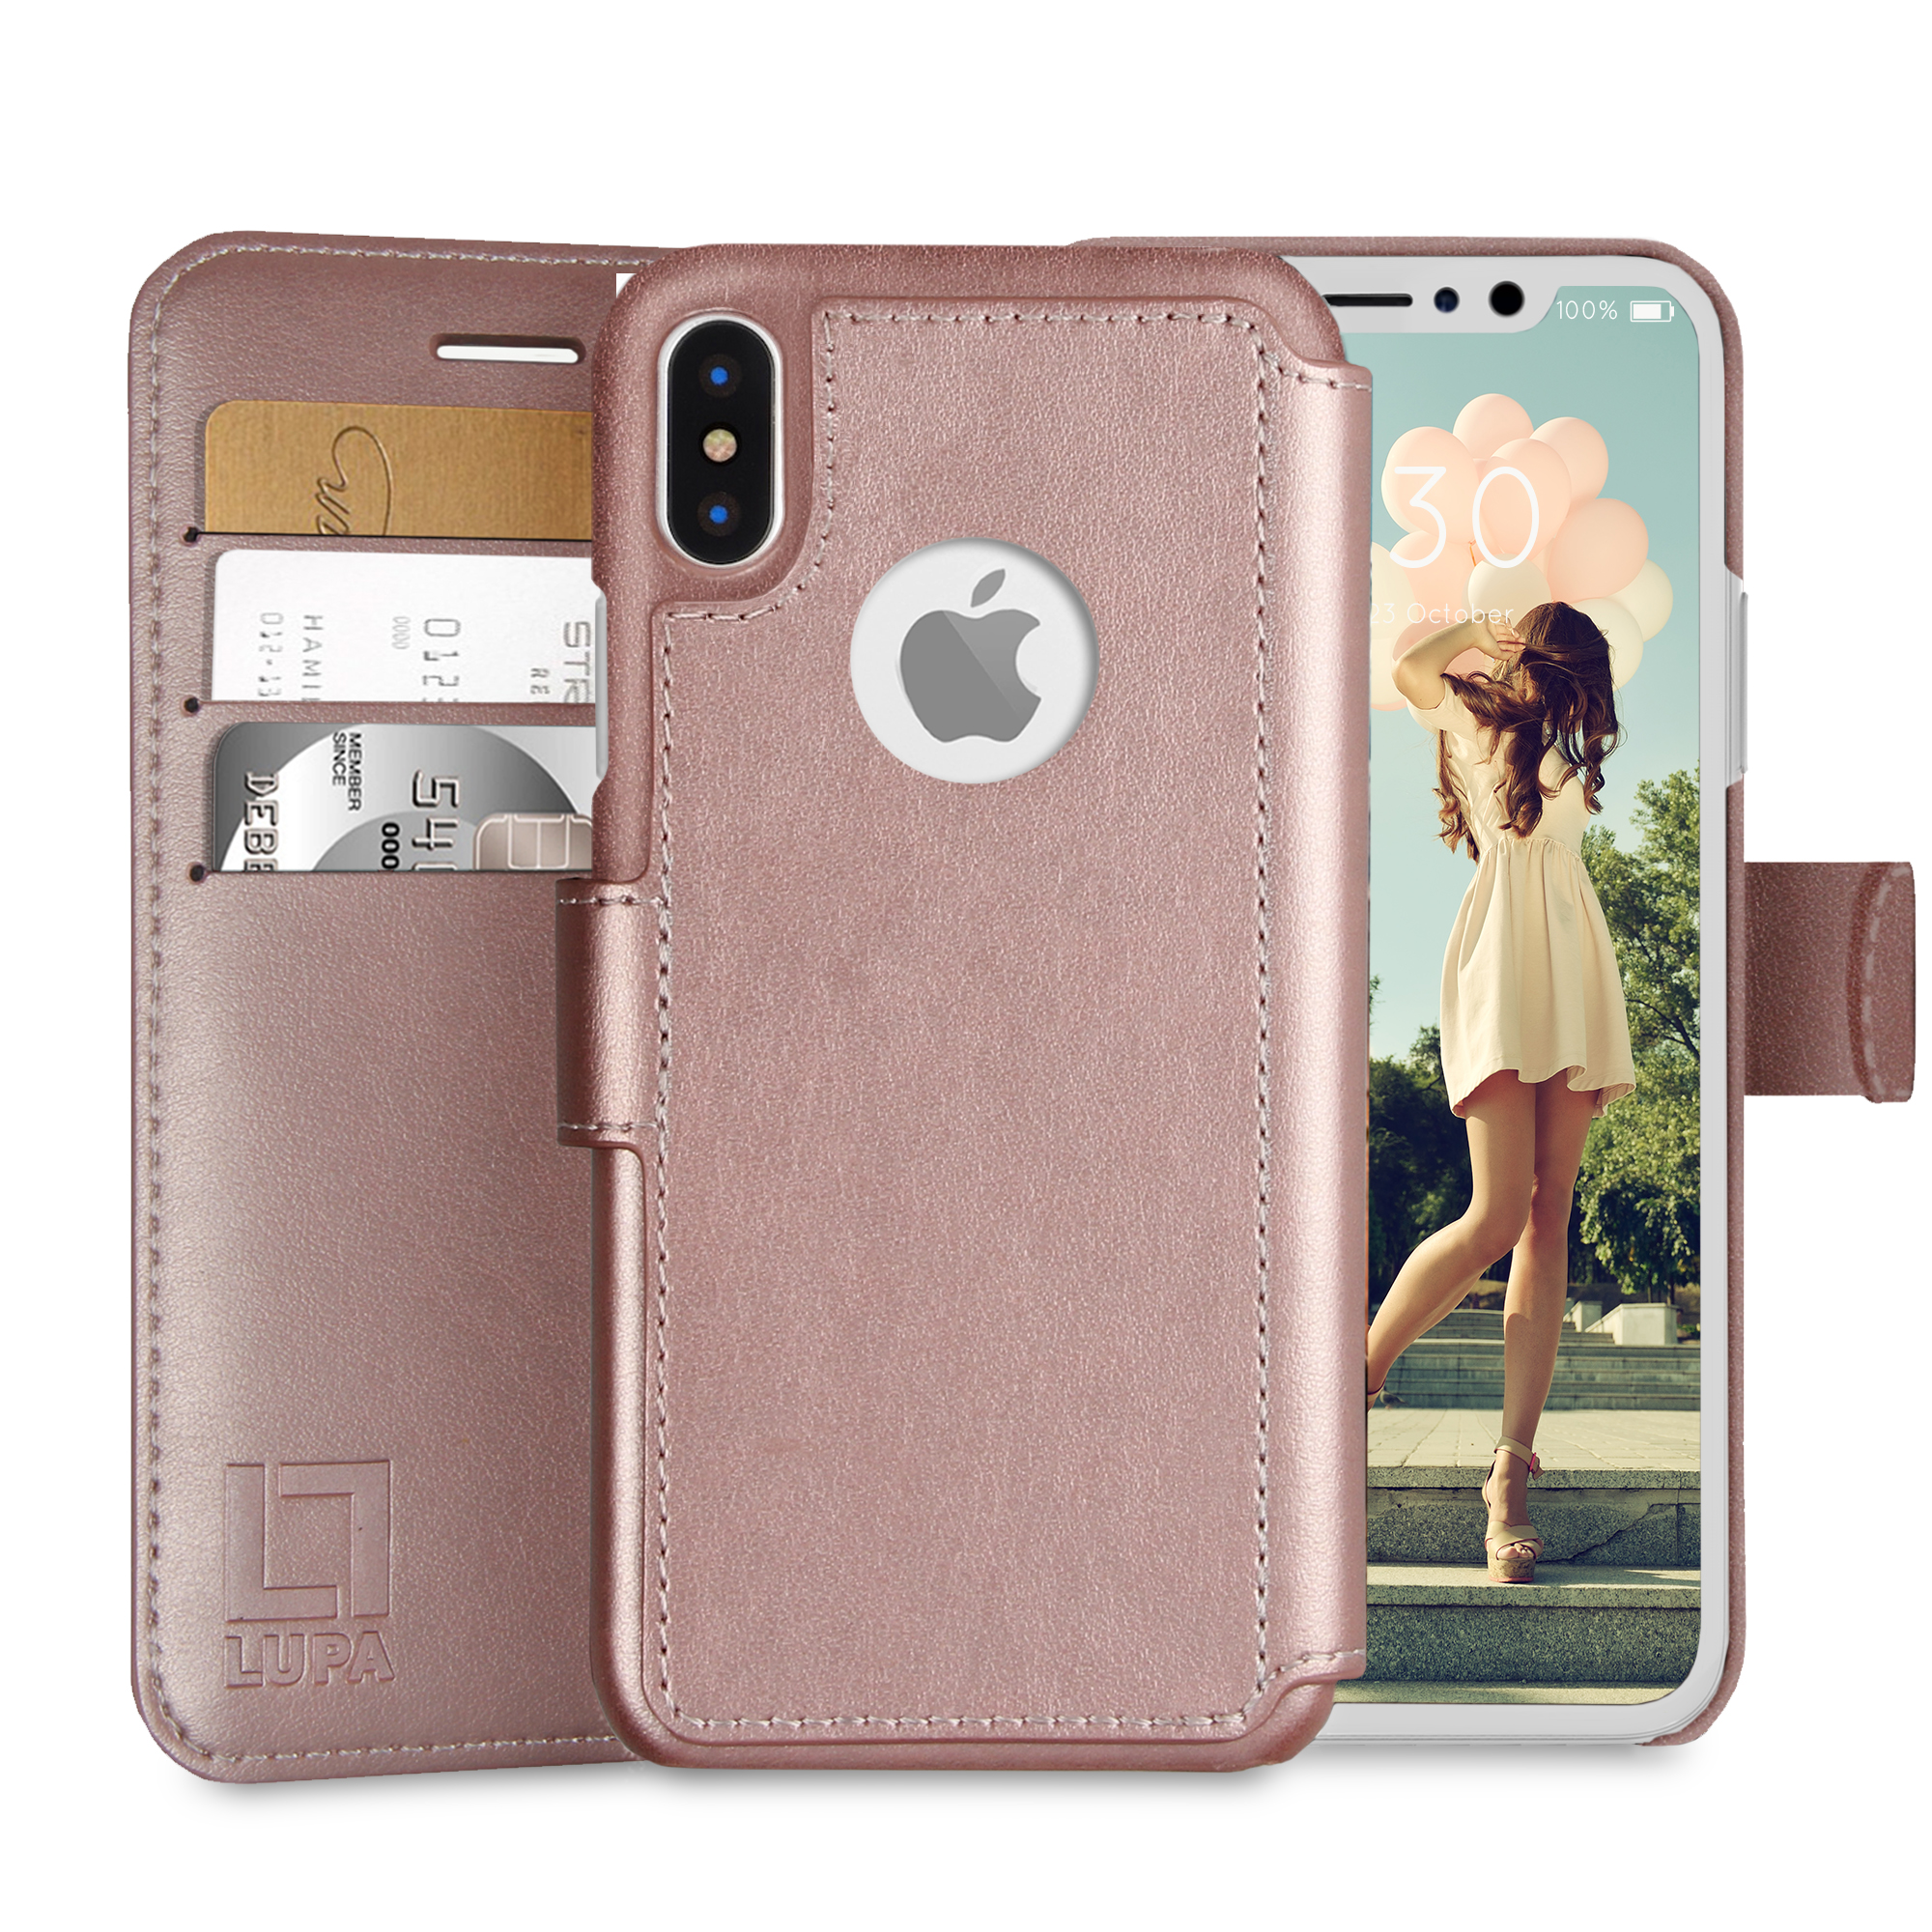 Amazon model for iPhone case